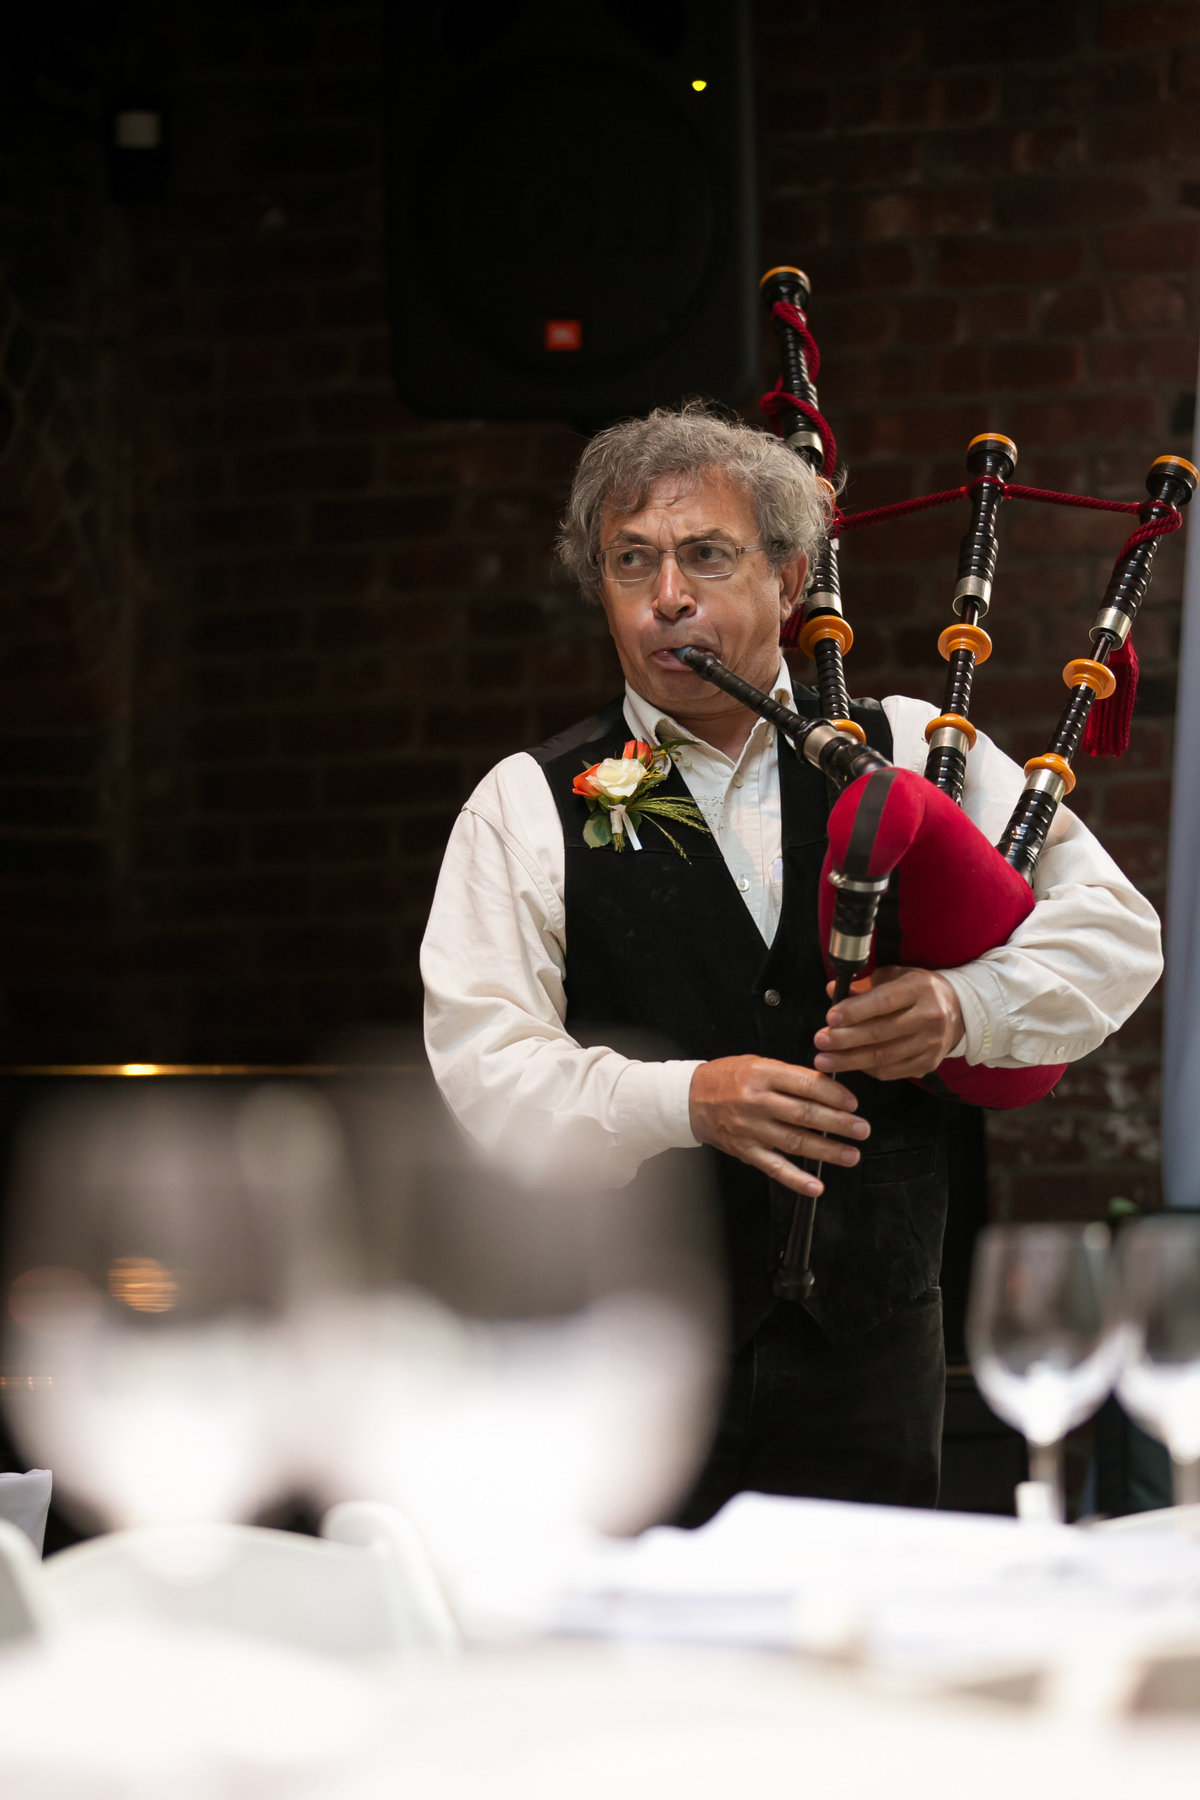 Brooklyn Wedding Photographer | Rob Allen Photography | Destination Wedding Photographer at Foundry in Long Island City New York Mels father playing bagpipes during ceremony